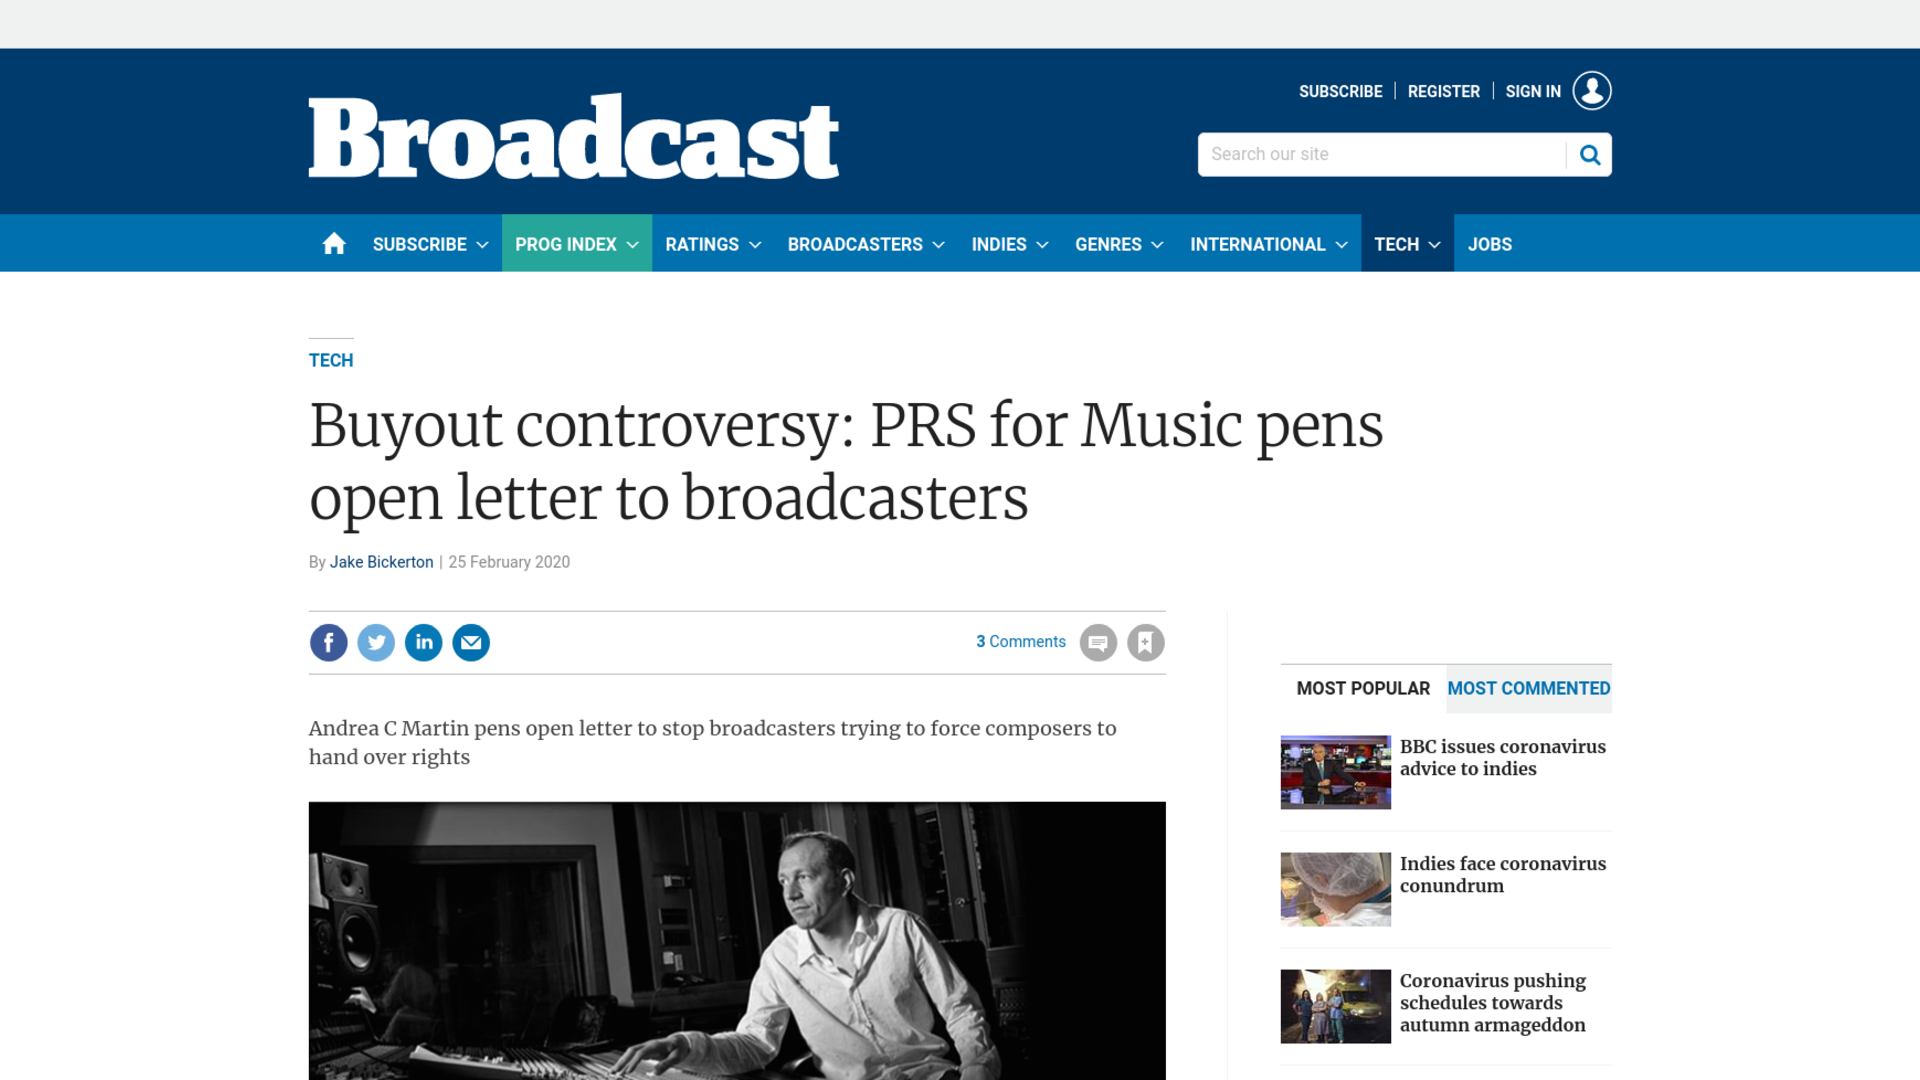 Fairness Rocks News Buyout controversy: PRS for Music pens open letter to broadcasters